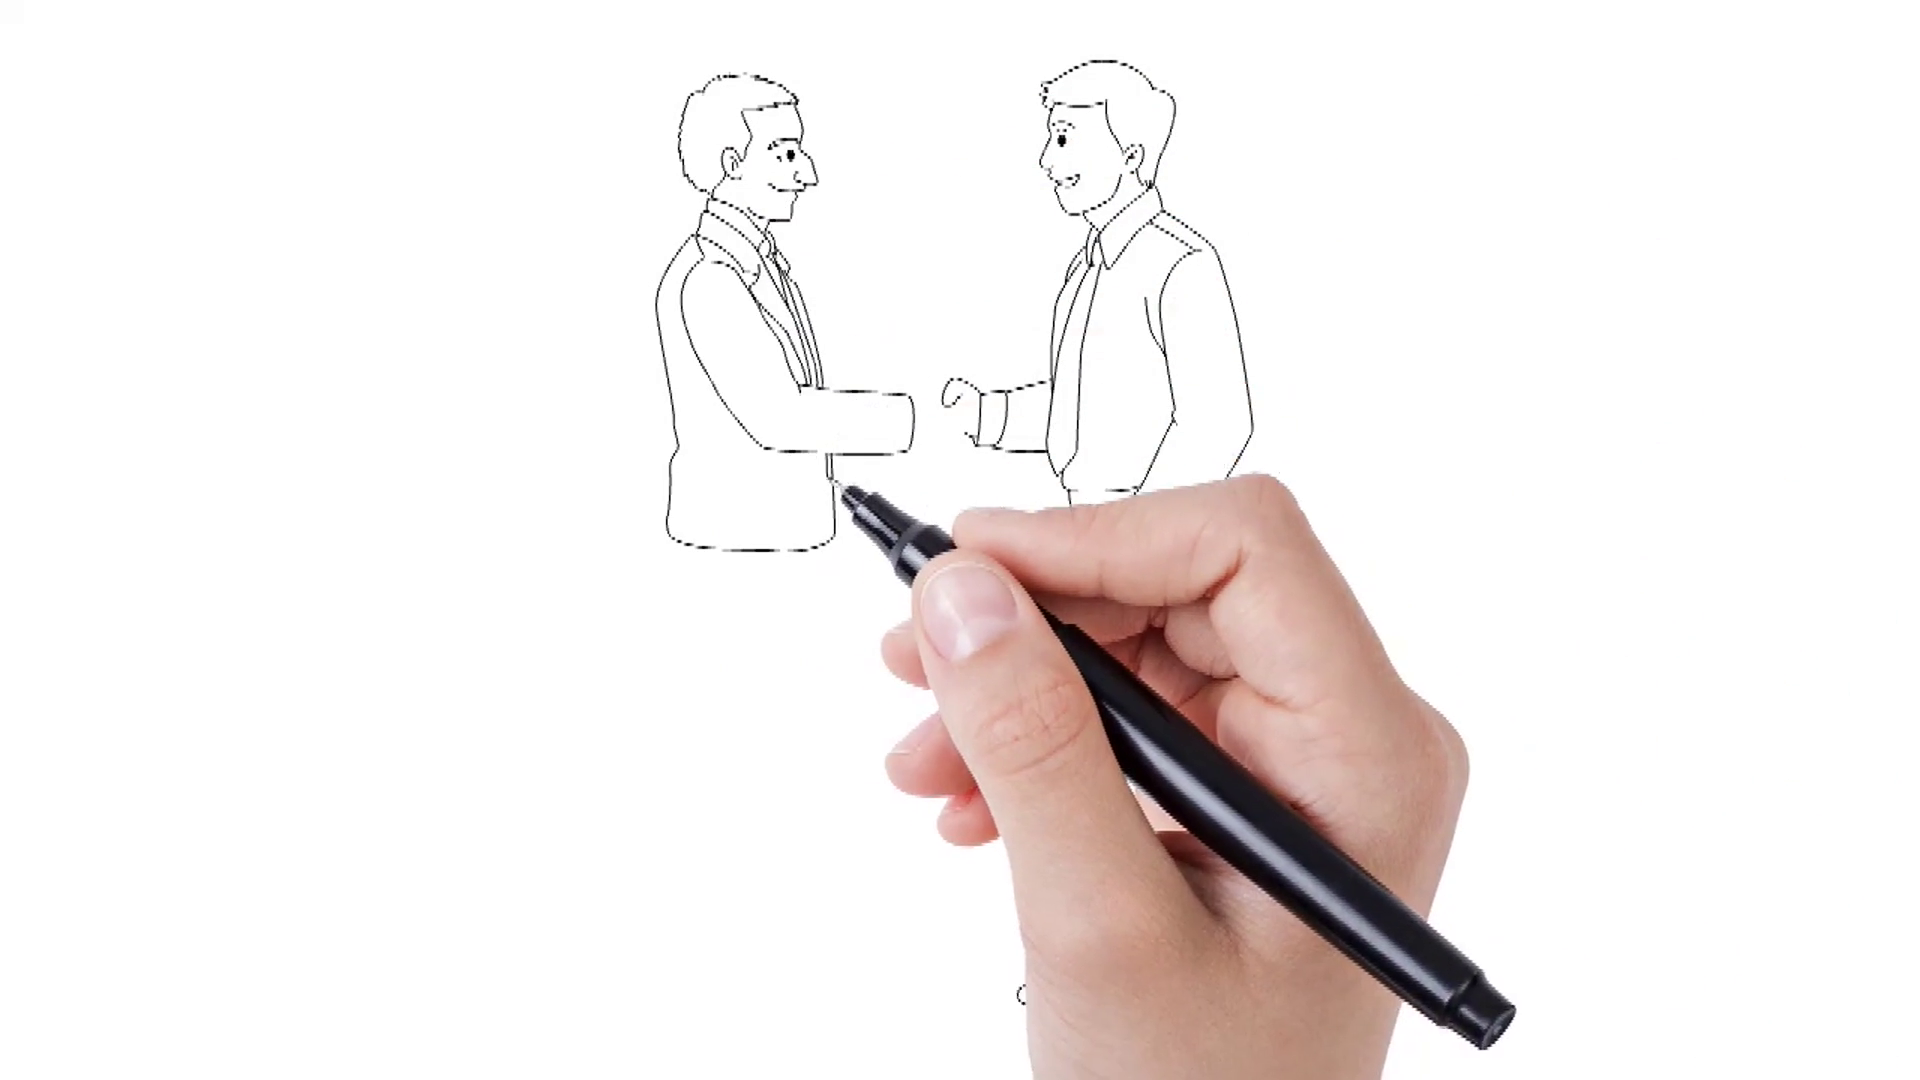 1920x1080 Whiteboard Animation Of Two Person Hand Shaking. Animated Sketch